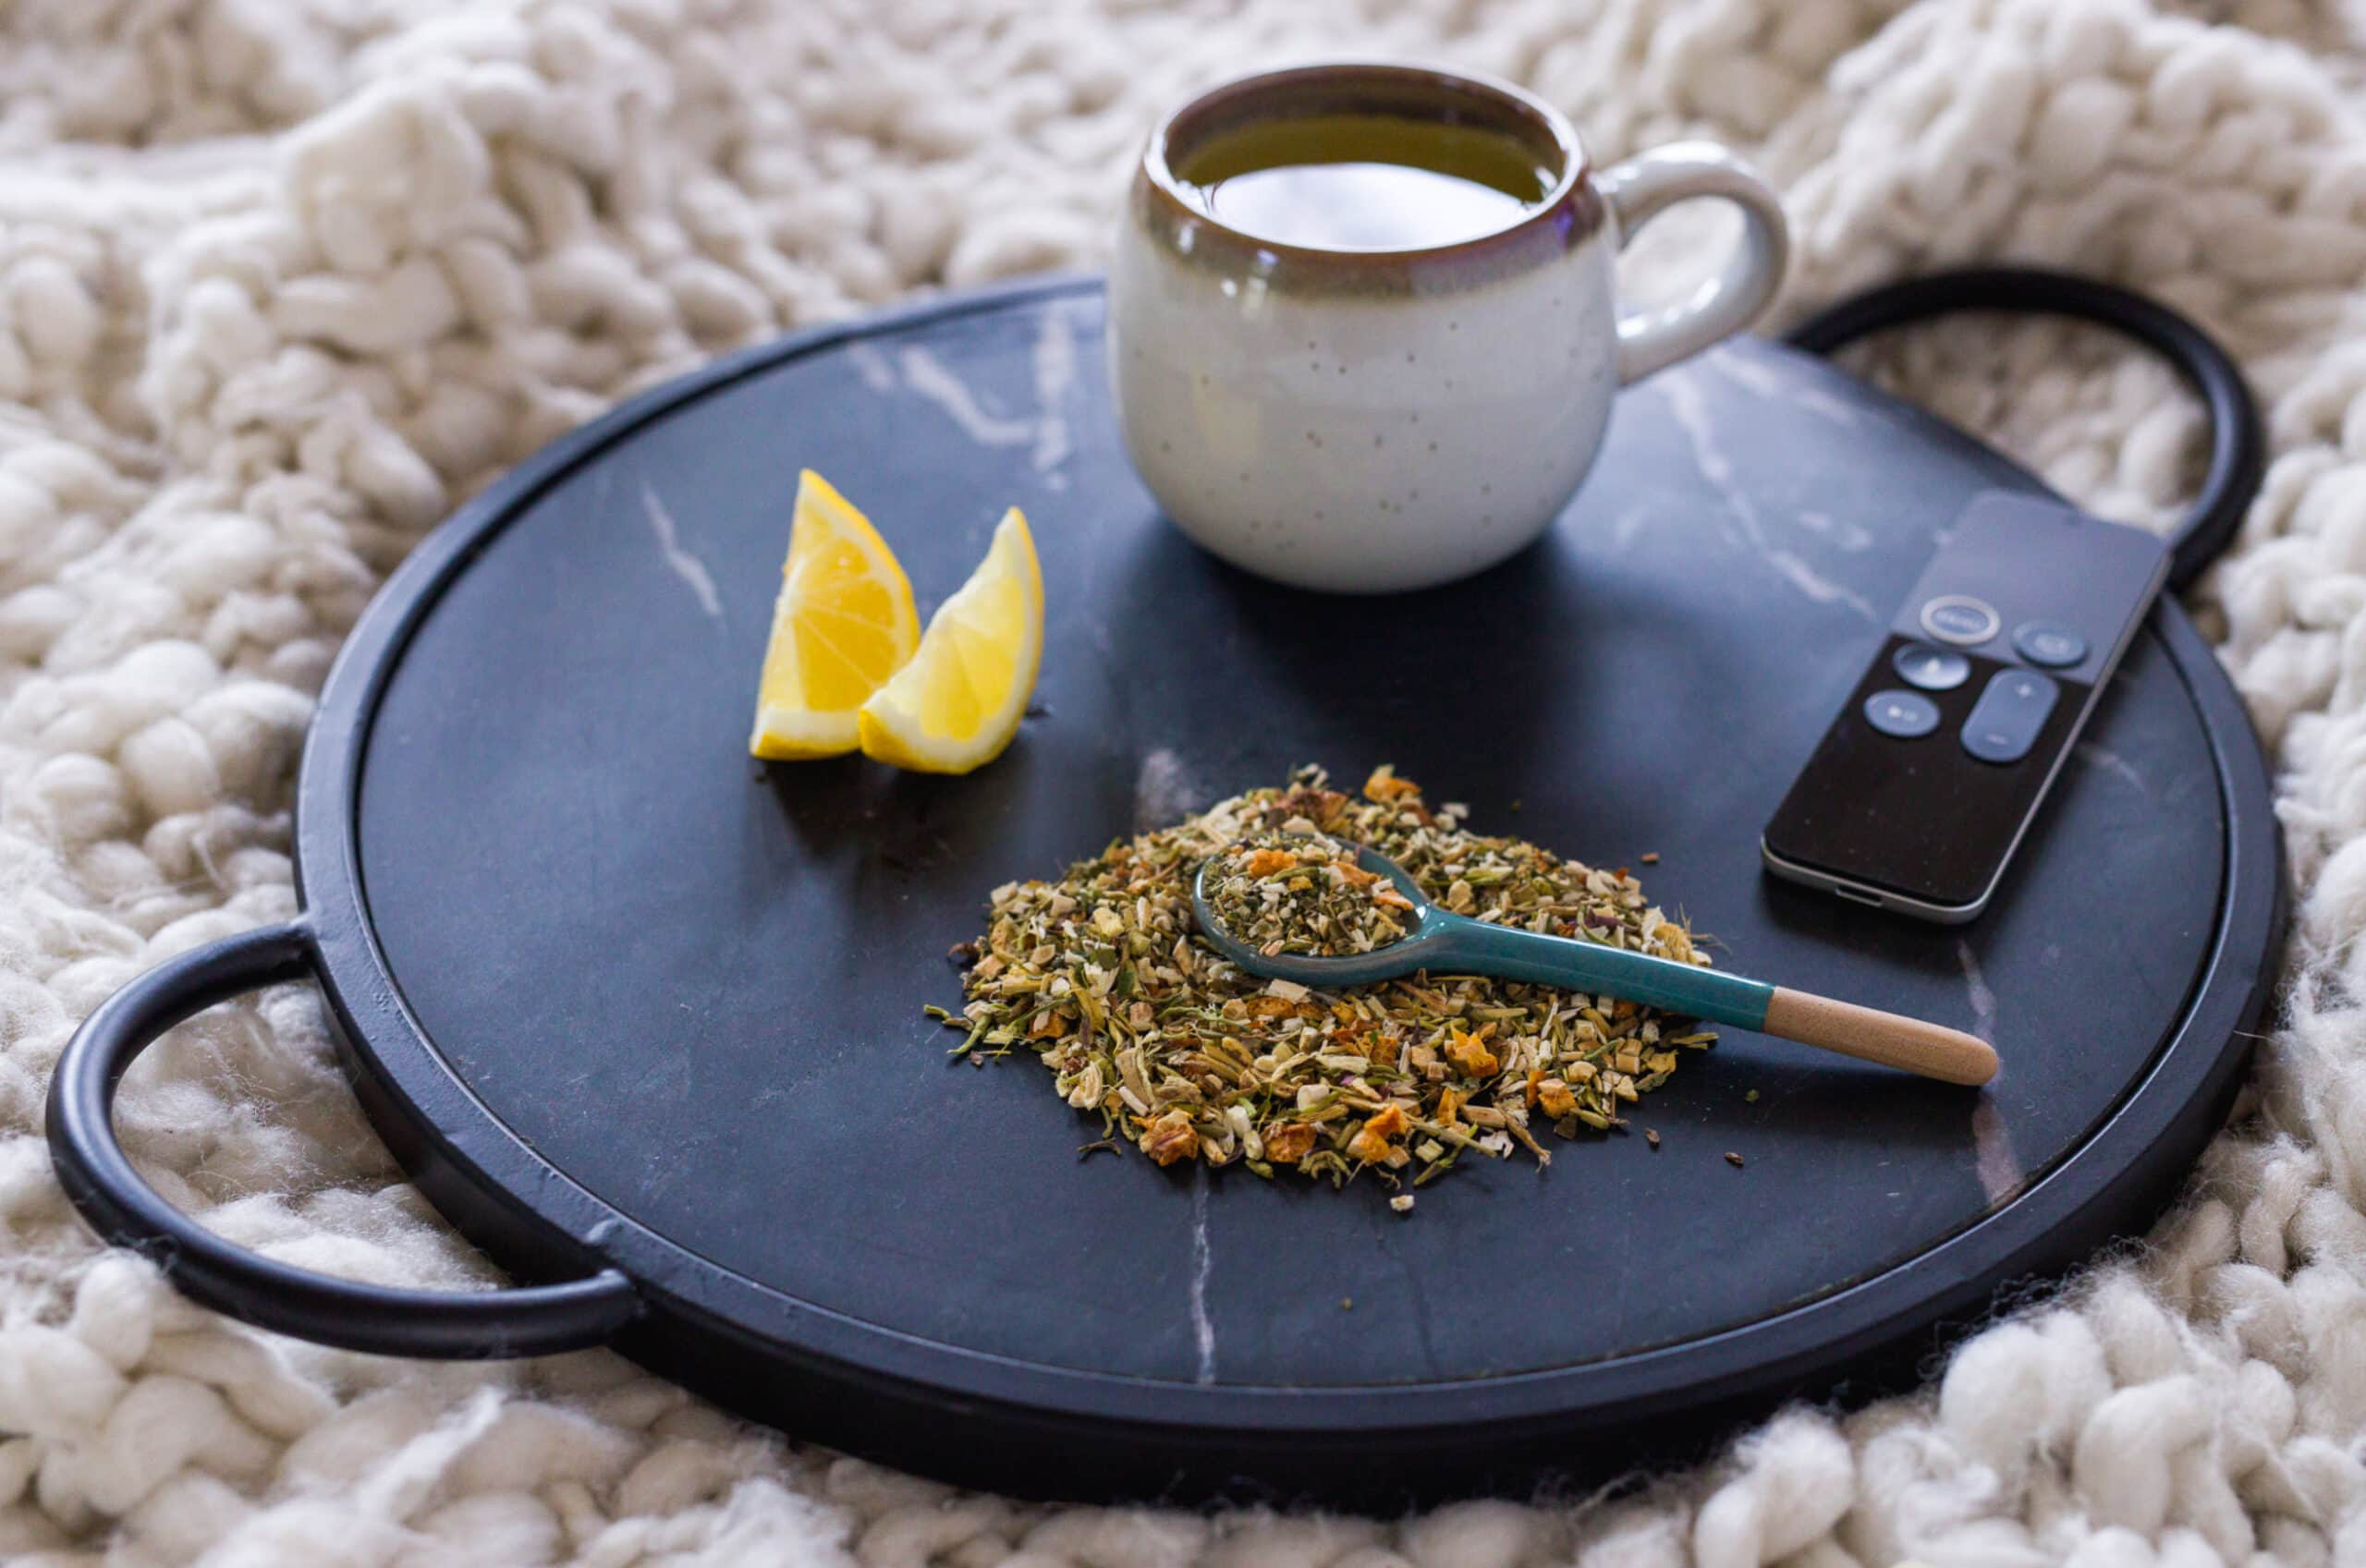 Photo of a tray with a cup of tea, a slice of lemon, a remote, and a pile of loose Flu Fighter tea.